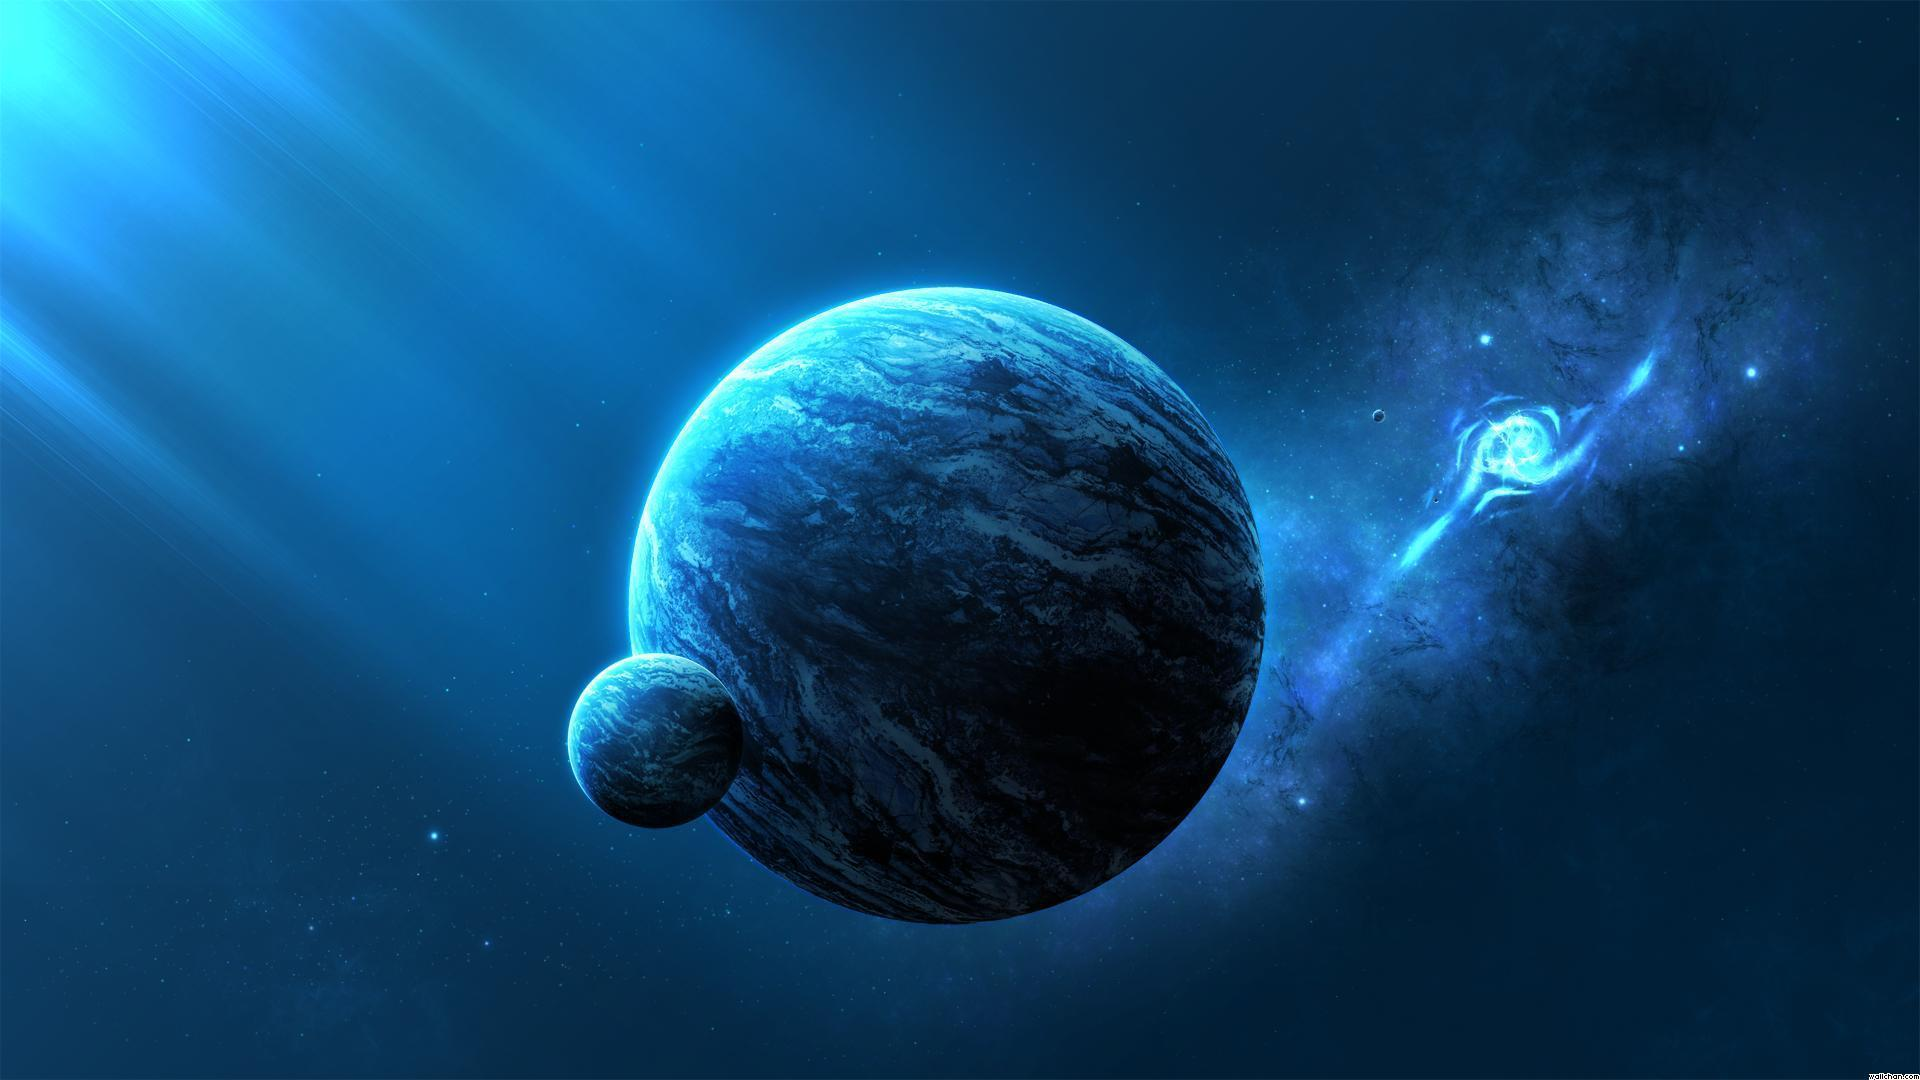 Blue Space Planet Wallpapers